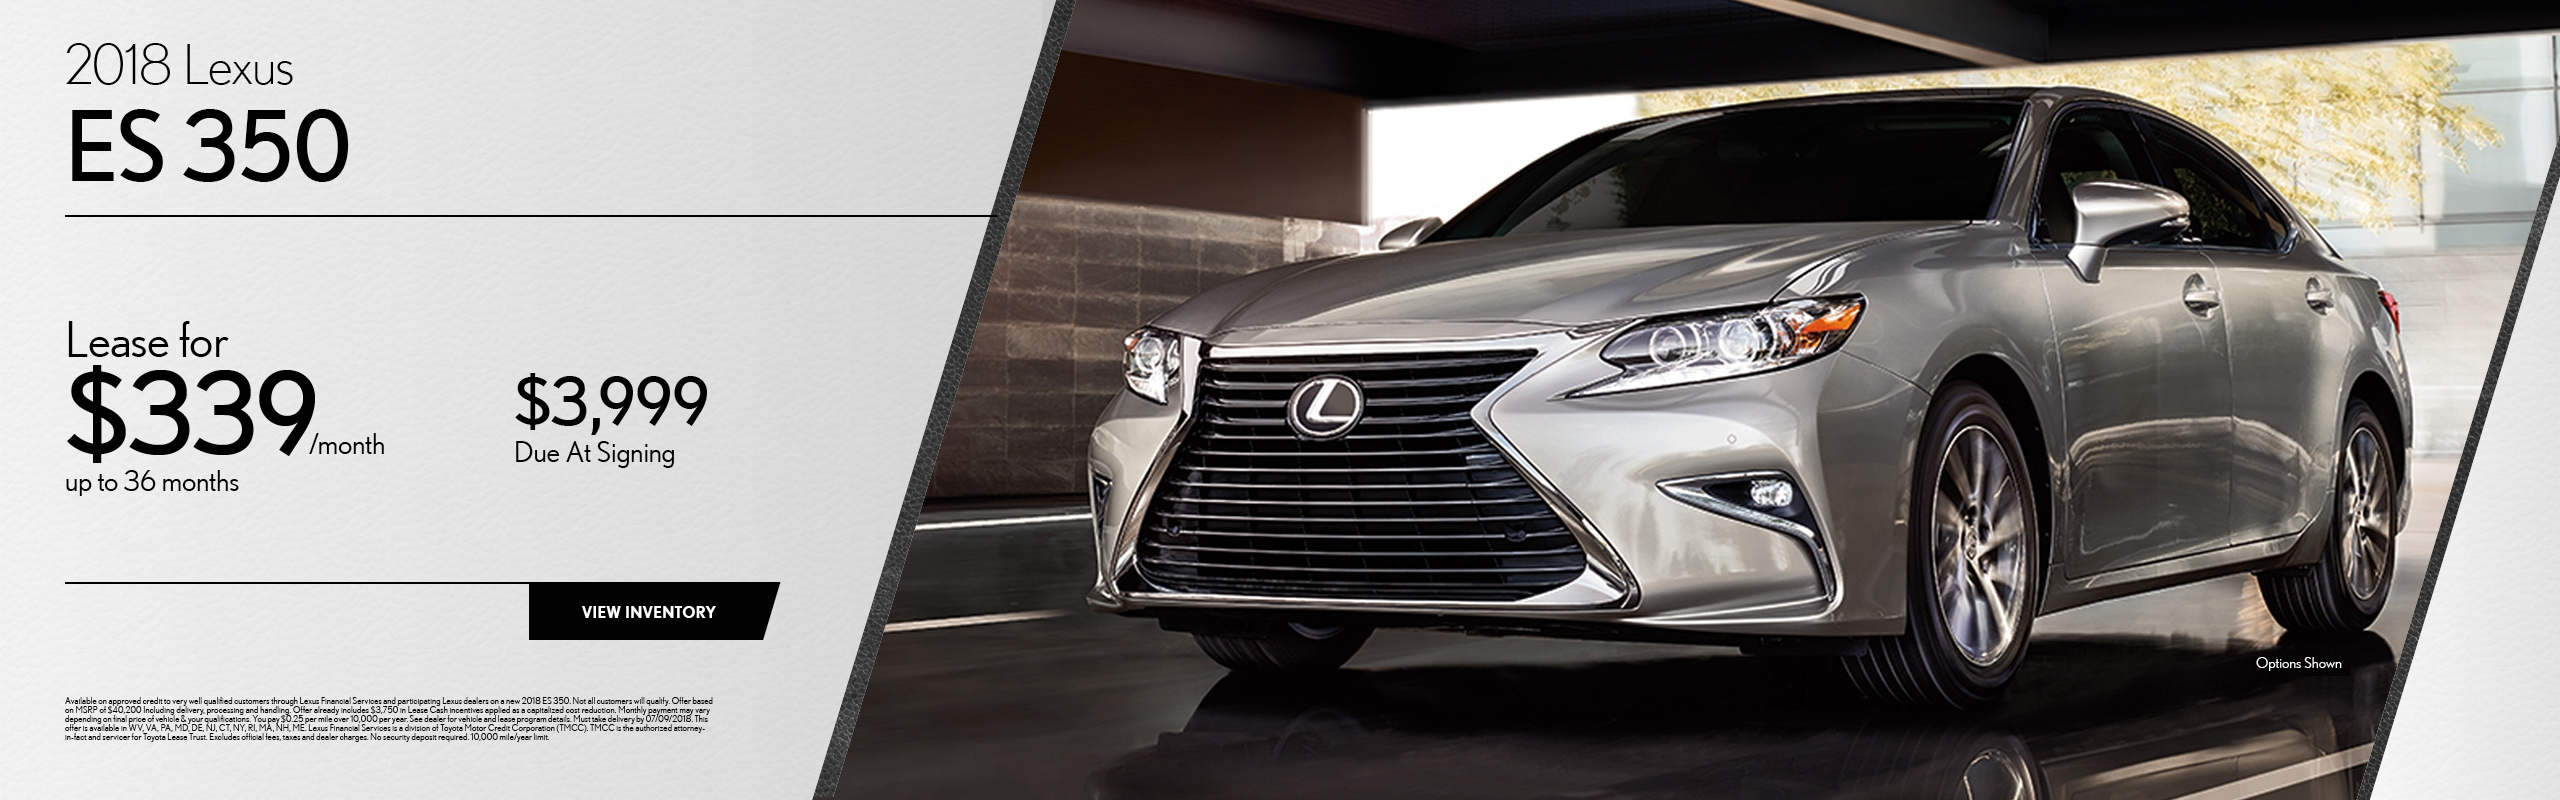 for autolux leasing lexus angle deals lx lease sales rear and